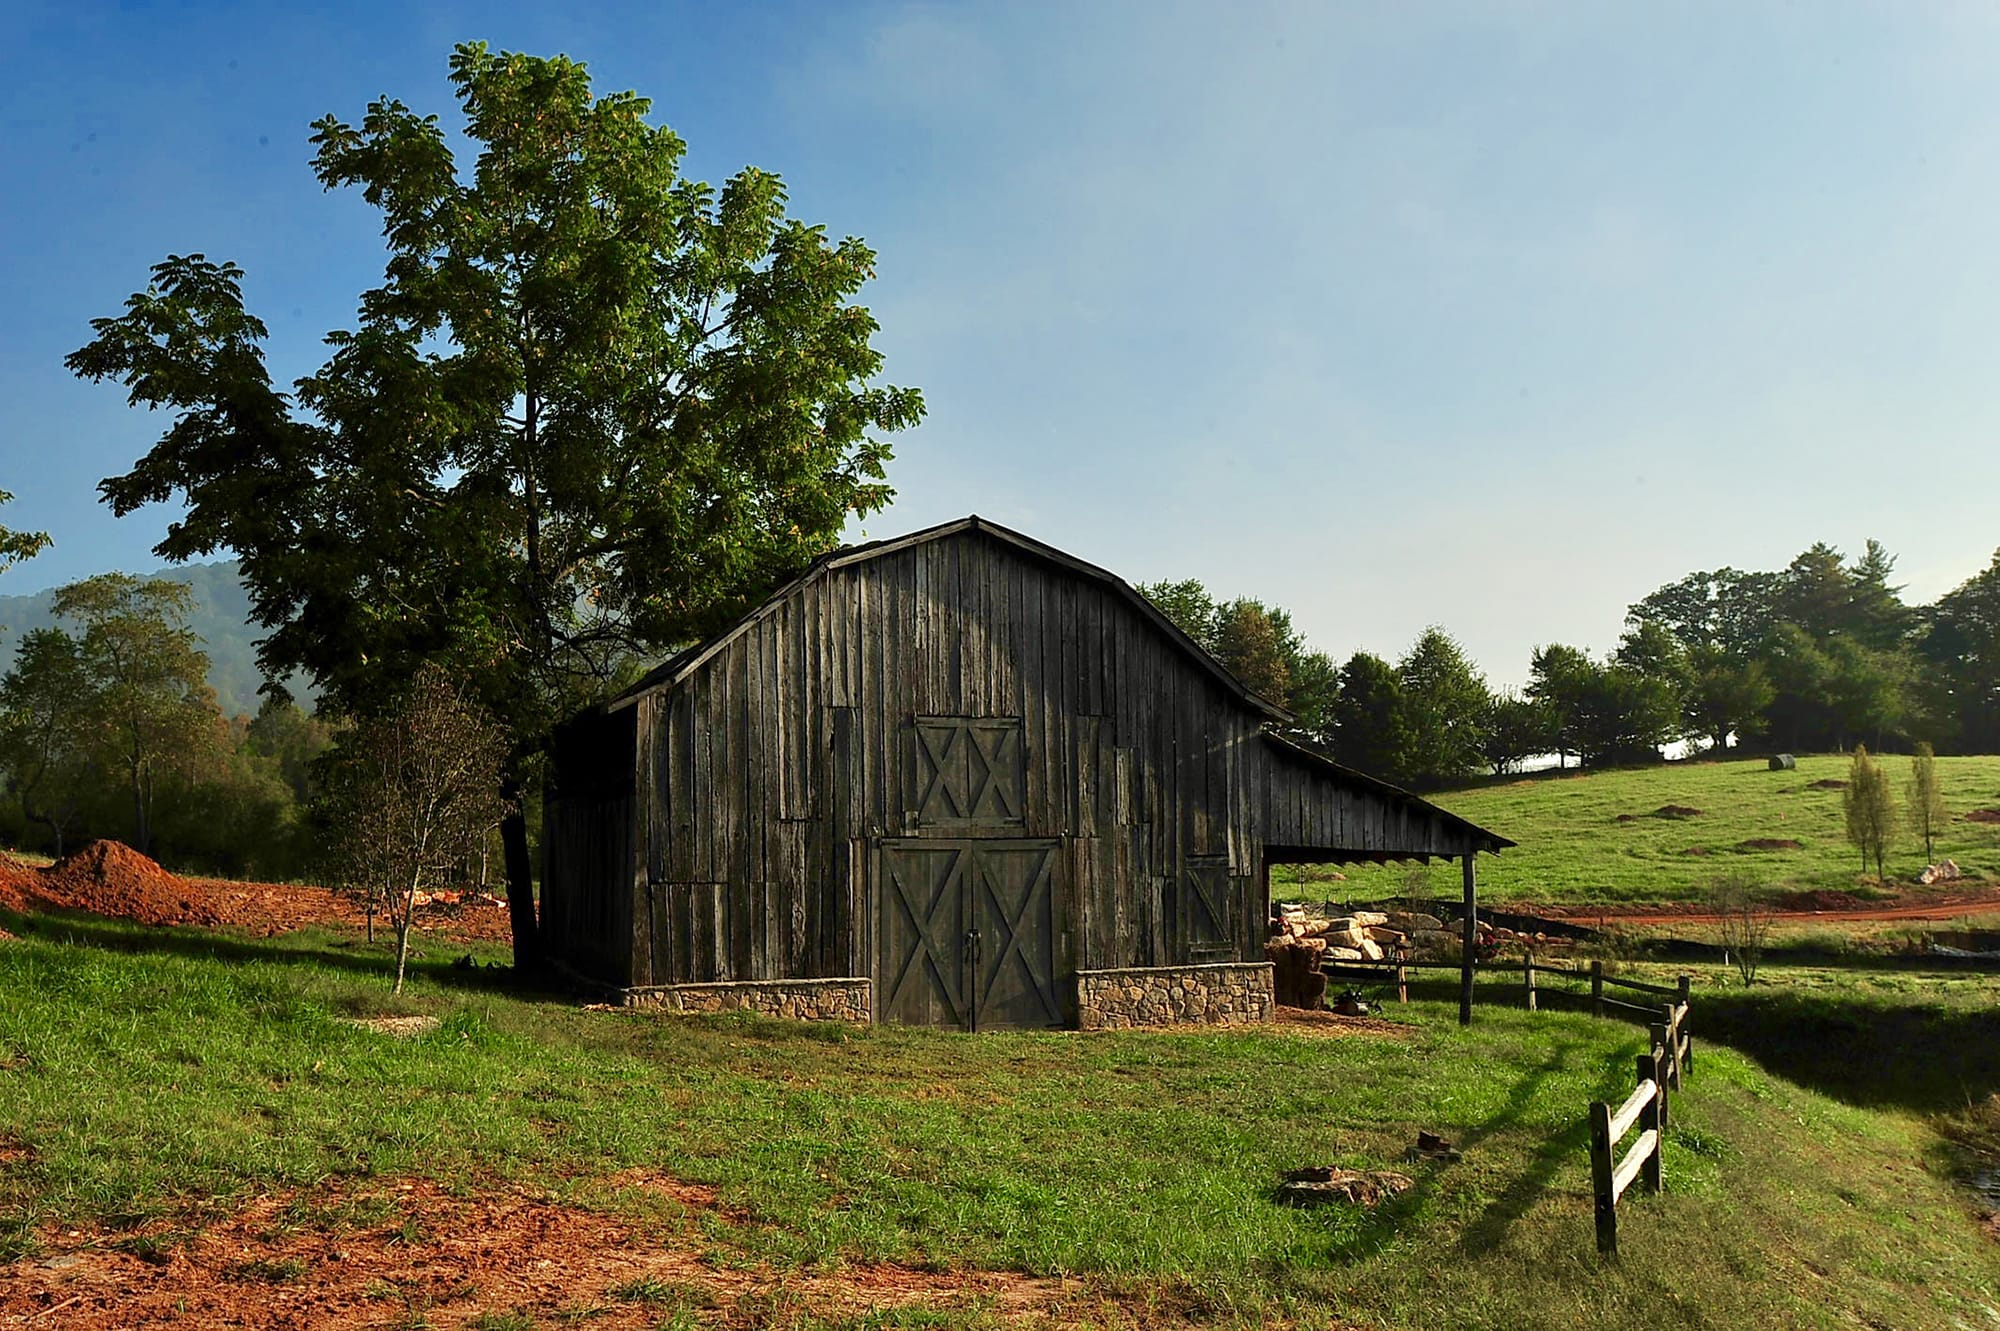 Century old barn at Creekside Farm